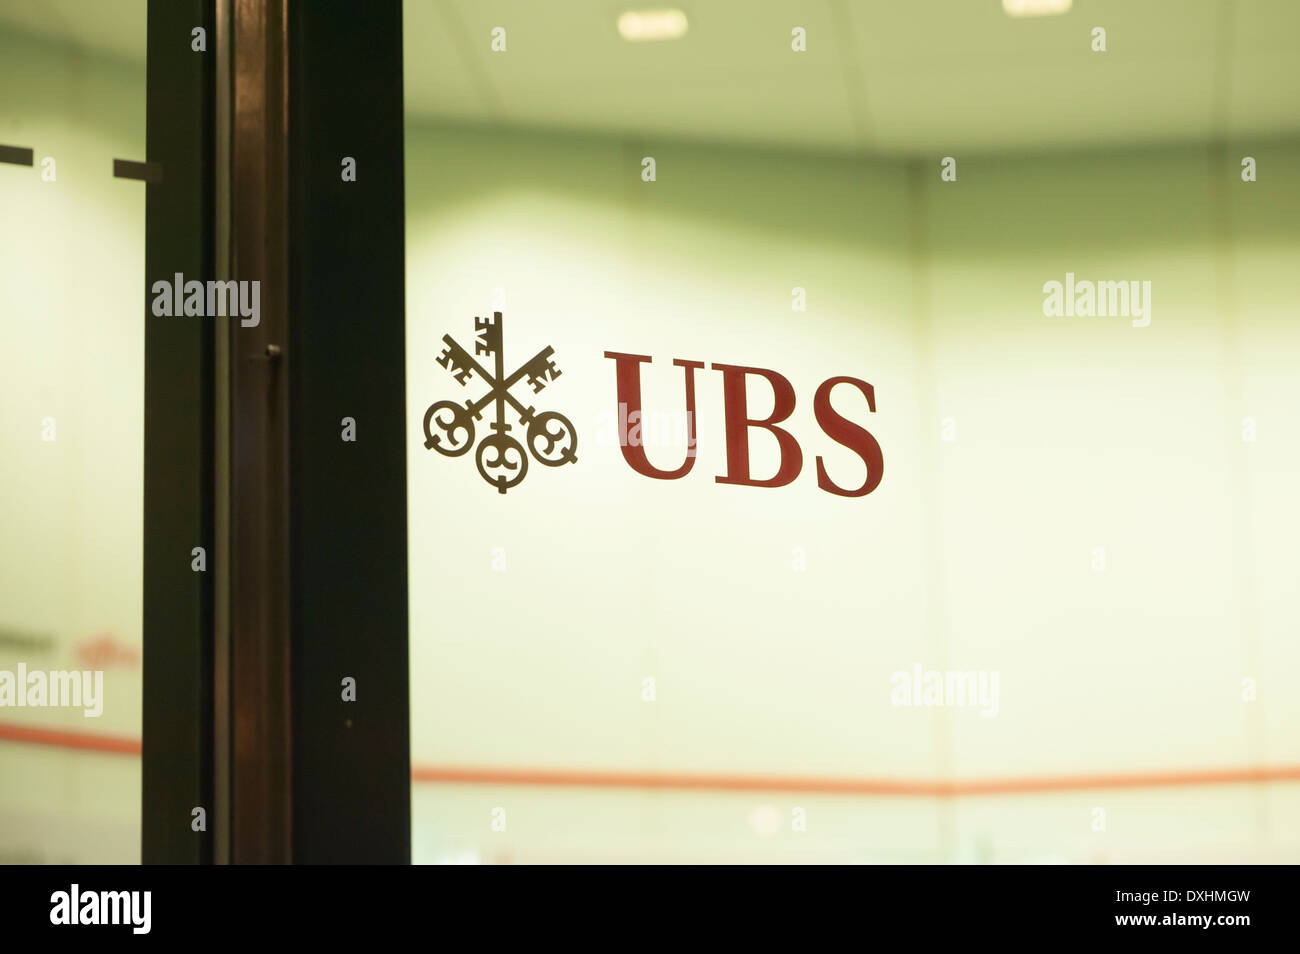 Logo of UBS, Switzerland's largest bank on the glass door of a UBS cashpoint on Bahnhofstrasse in Zurich, Switzerland, at night. - Stock Image